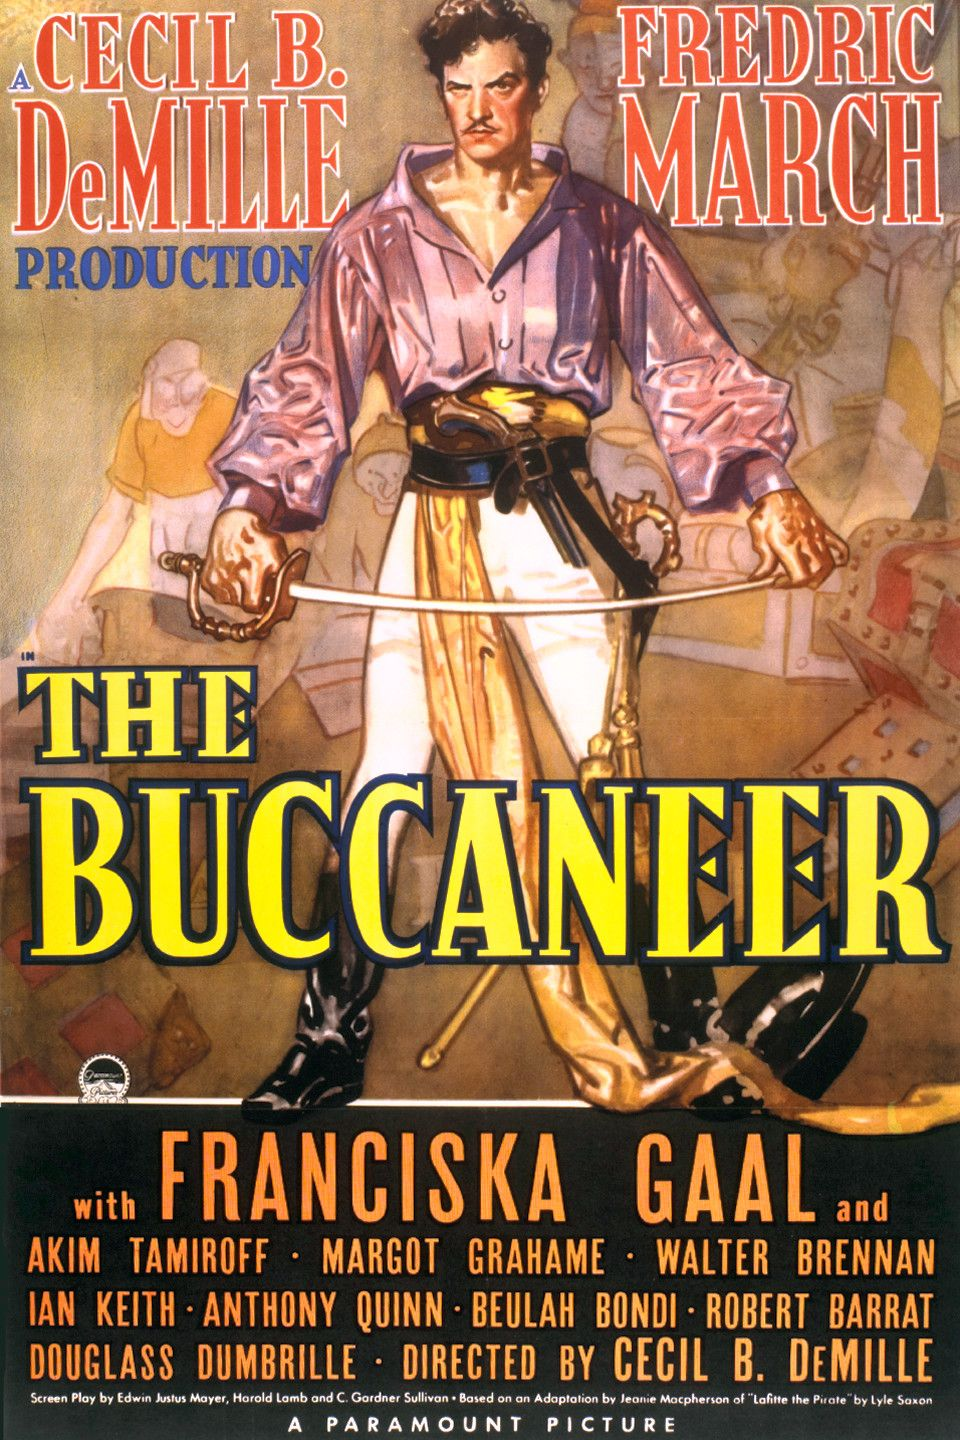 The Buccaneer (1938) Sailing Movies Pirate movies